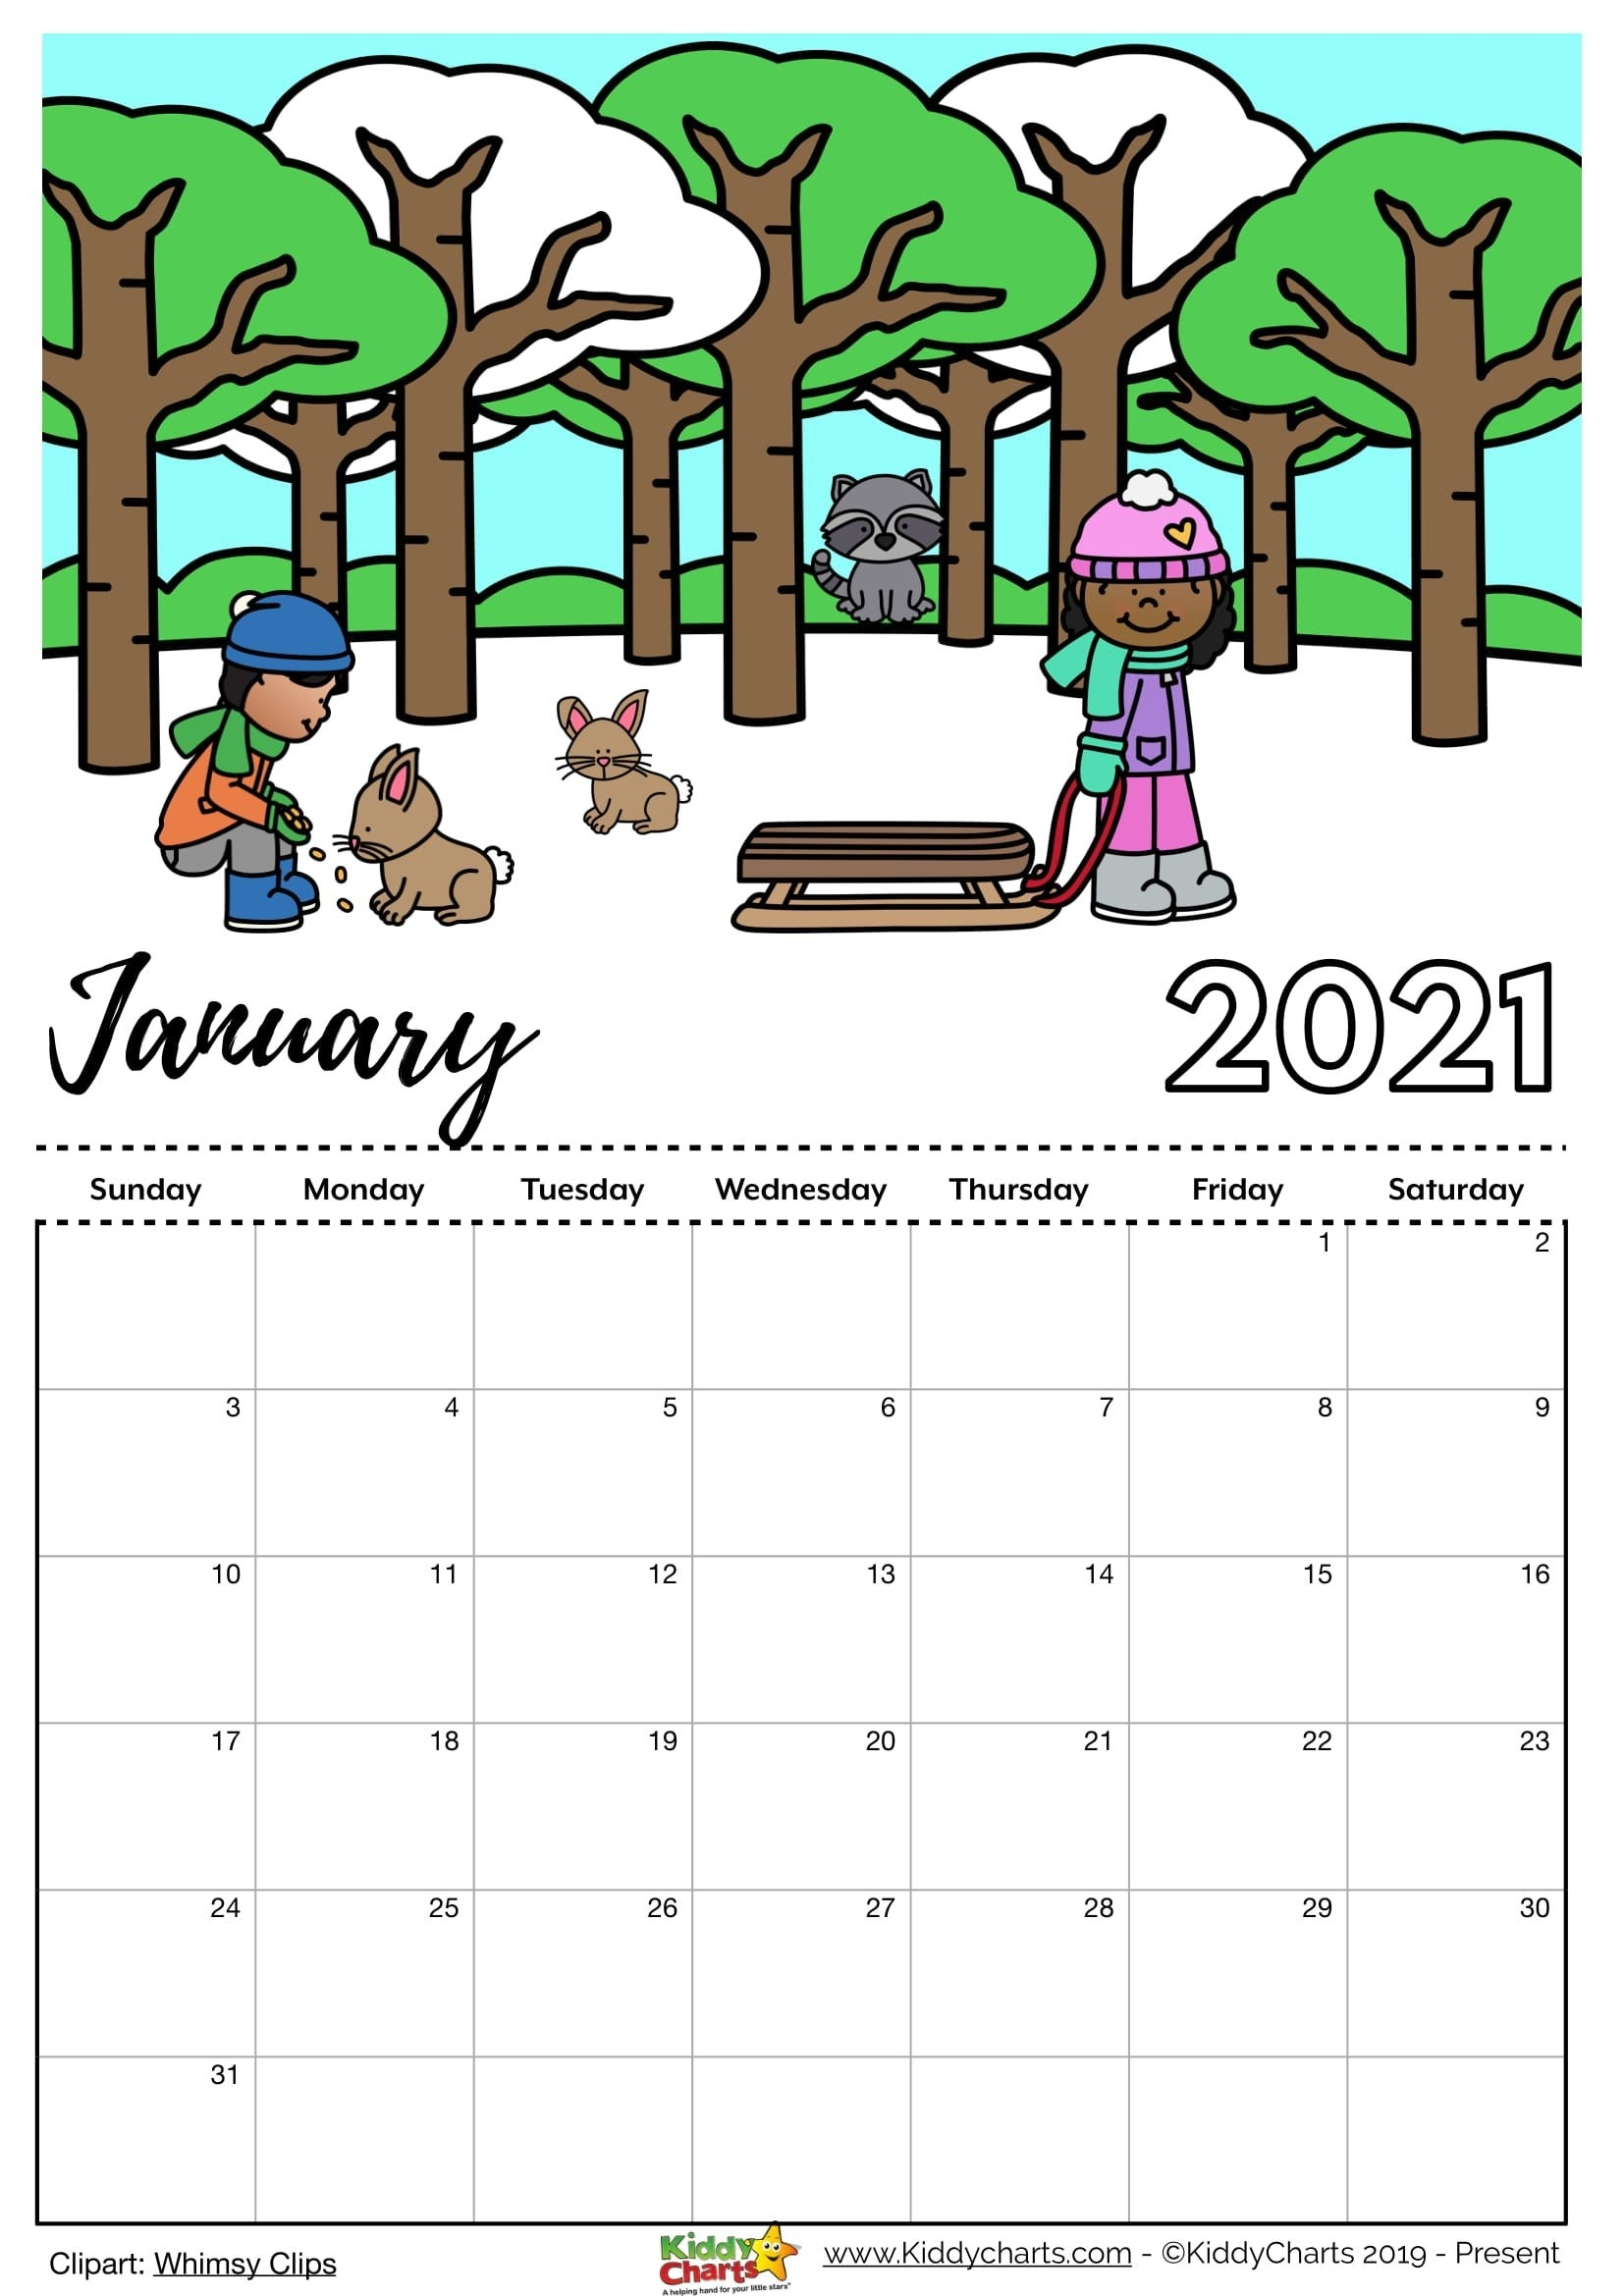 Check Our New Free Printable 2021 Calendar! | Calendar